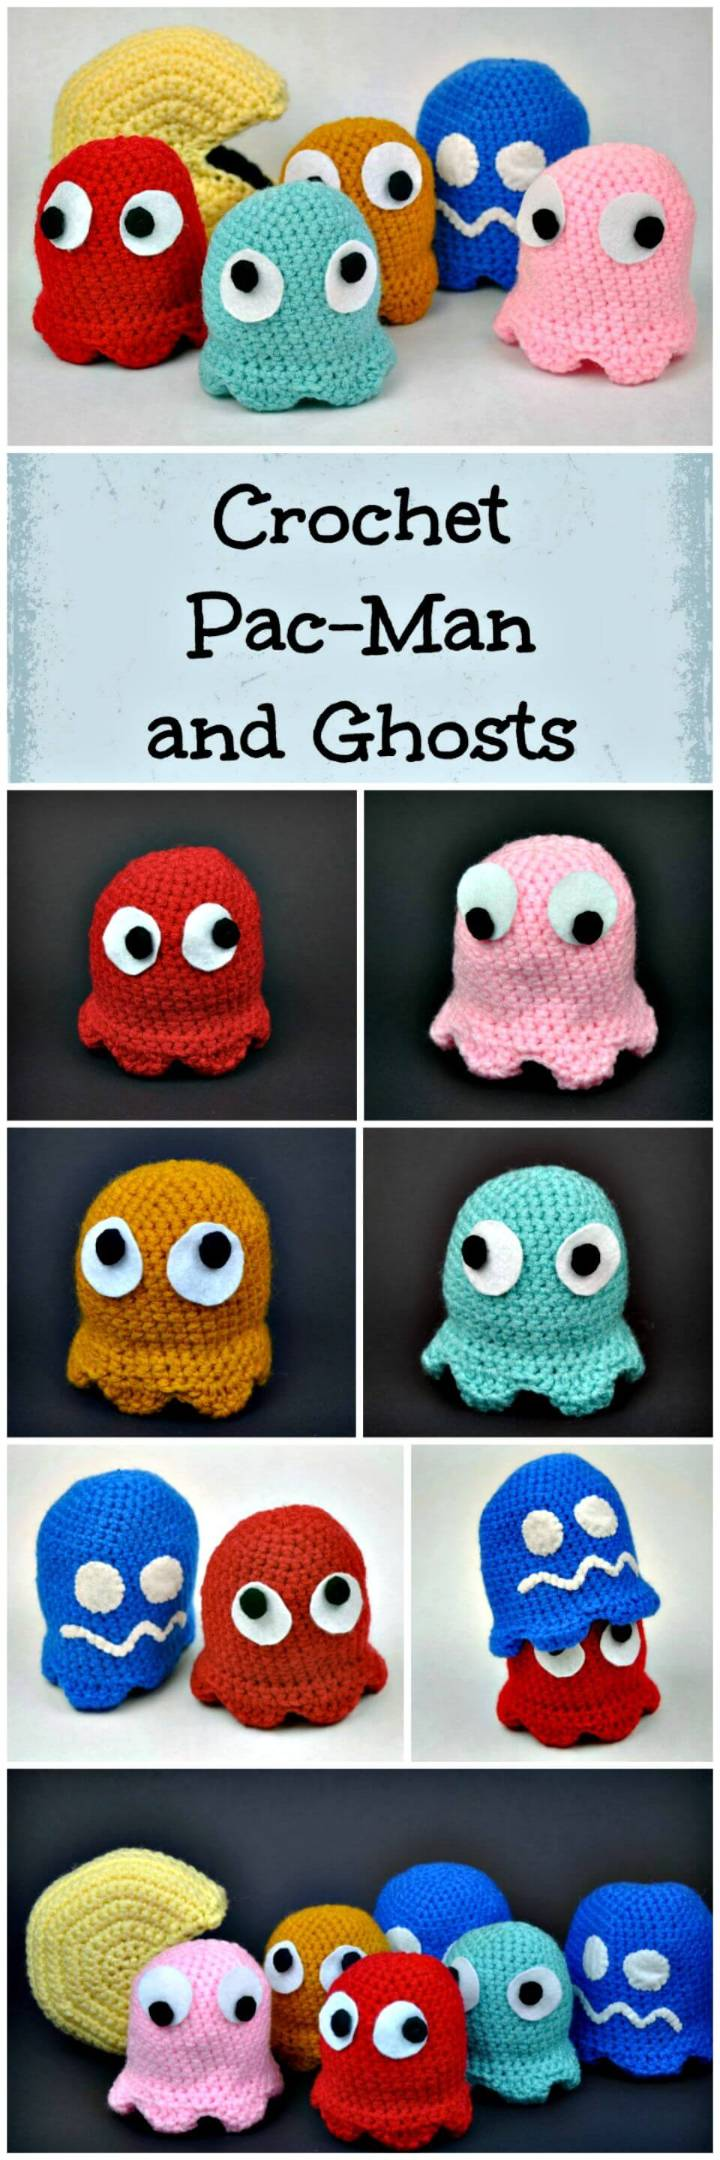 Crochet Pac-Man and Ghosts Amigurumi Pattern